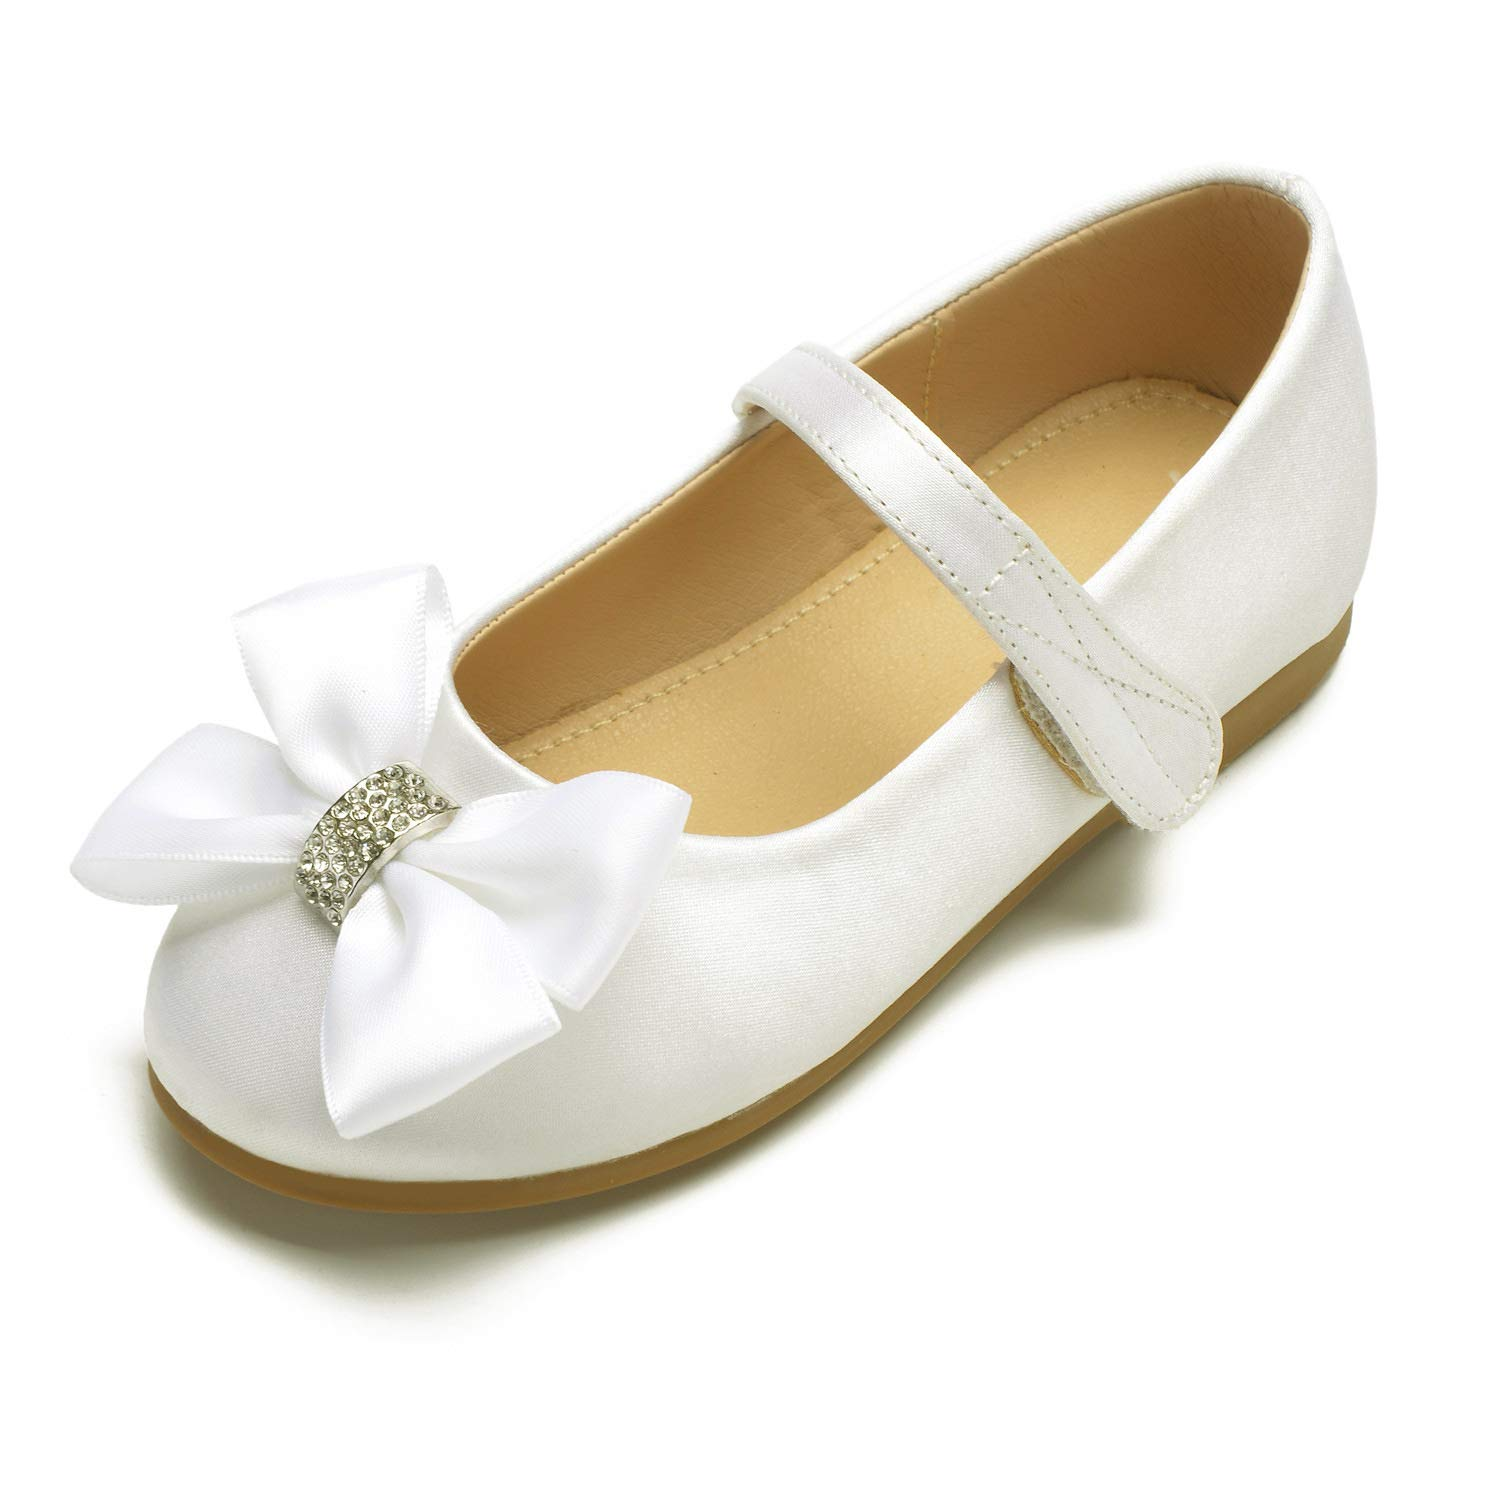 LLBubble Flat Satin Flower Girls Shoes Round Toe Strap Wedding Party Shoes for Kids Princess Dress Pumps Shoes with Bow-1211-5